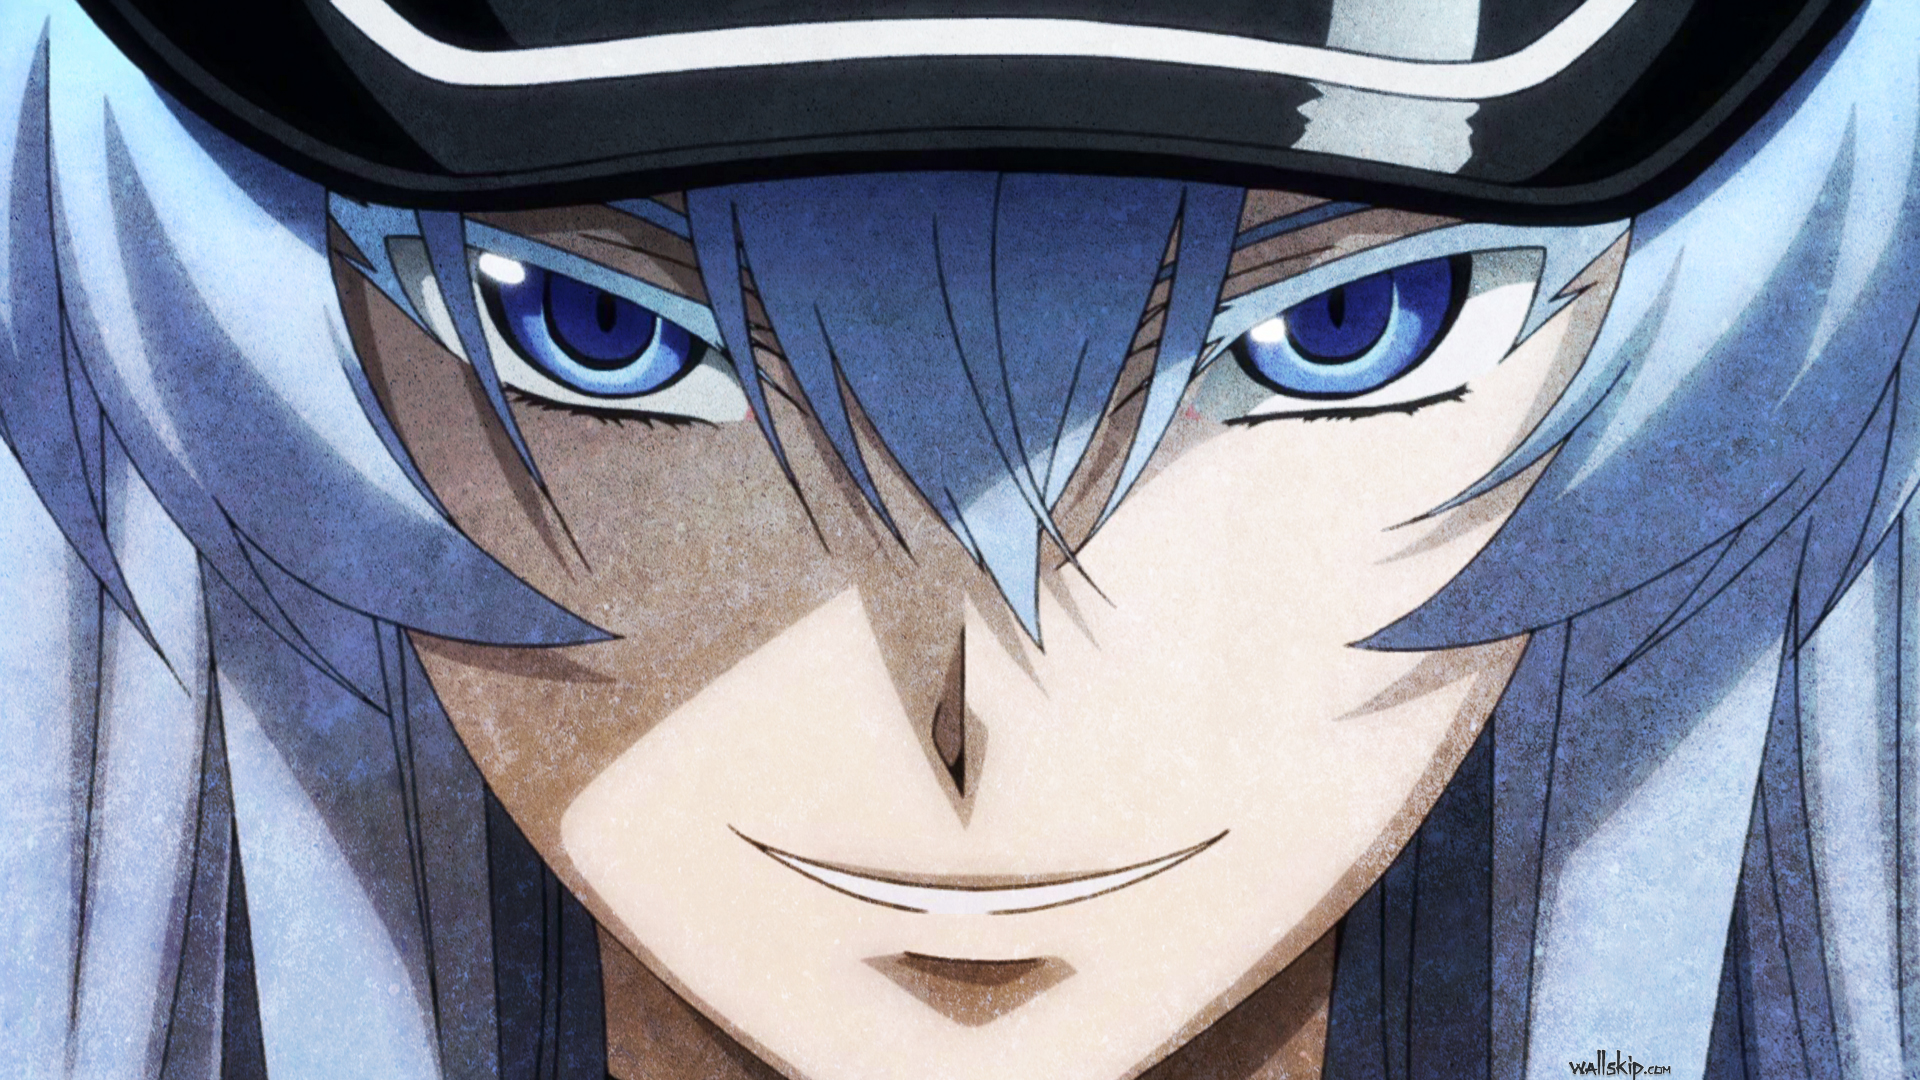 Esdeath Wallpaper Akame Ga Kill Esdeath 259973 Hd Wallpaper